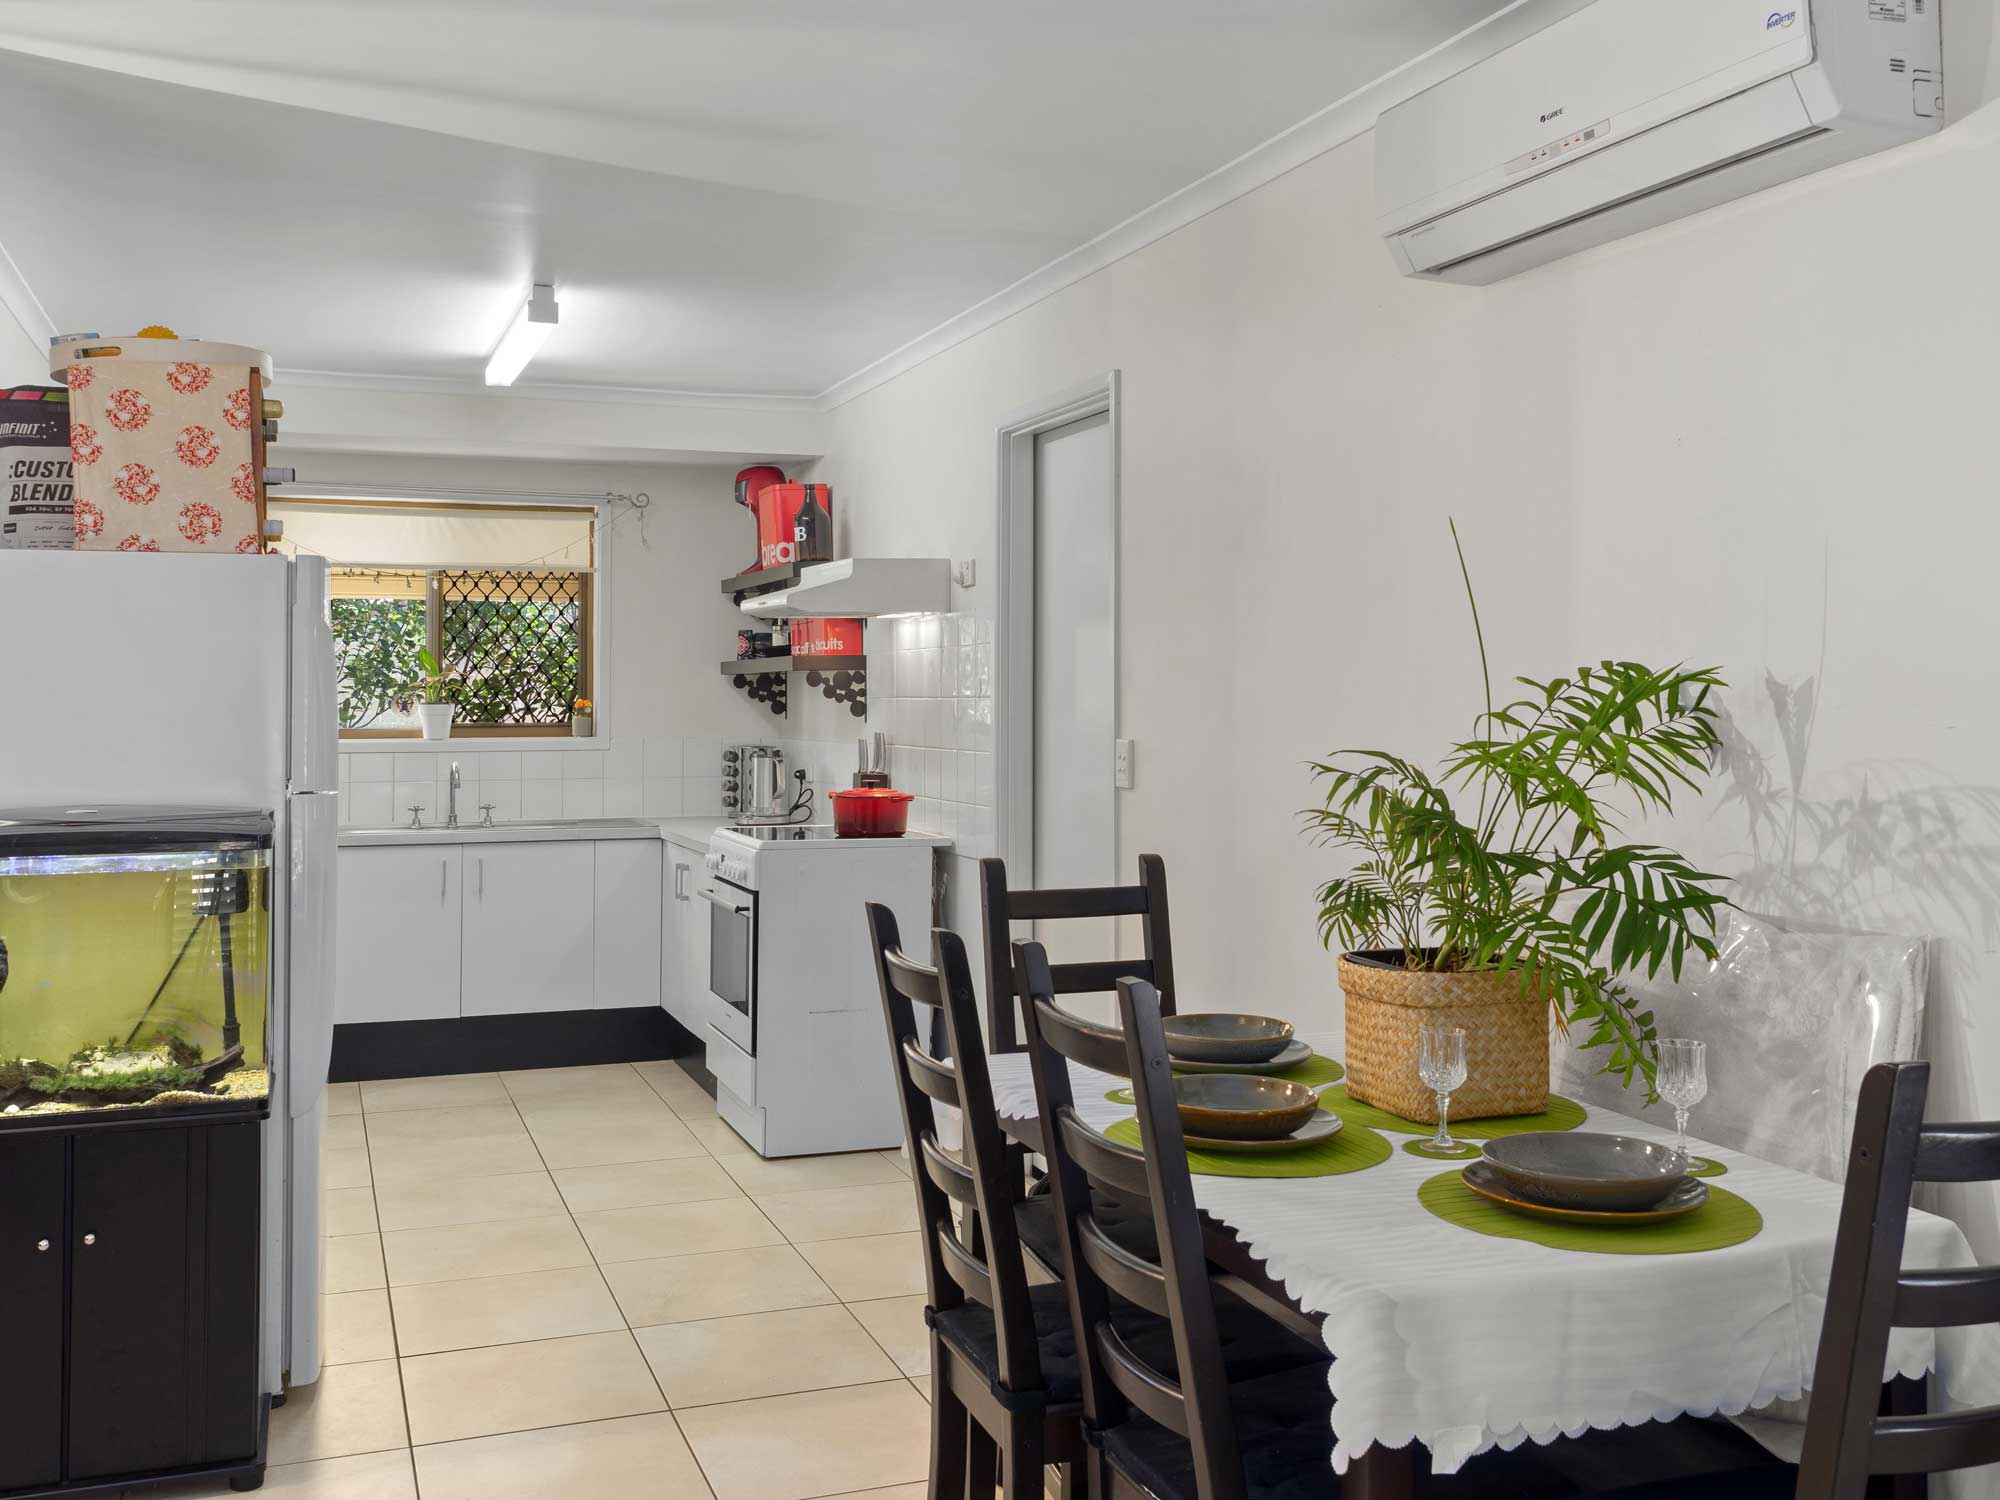 Capturing the entry way of the home for sale at Mitchelton